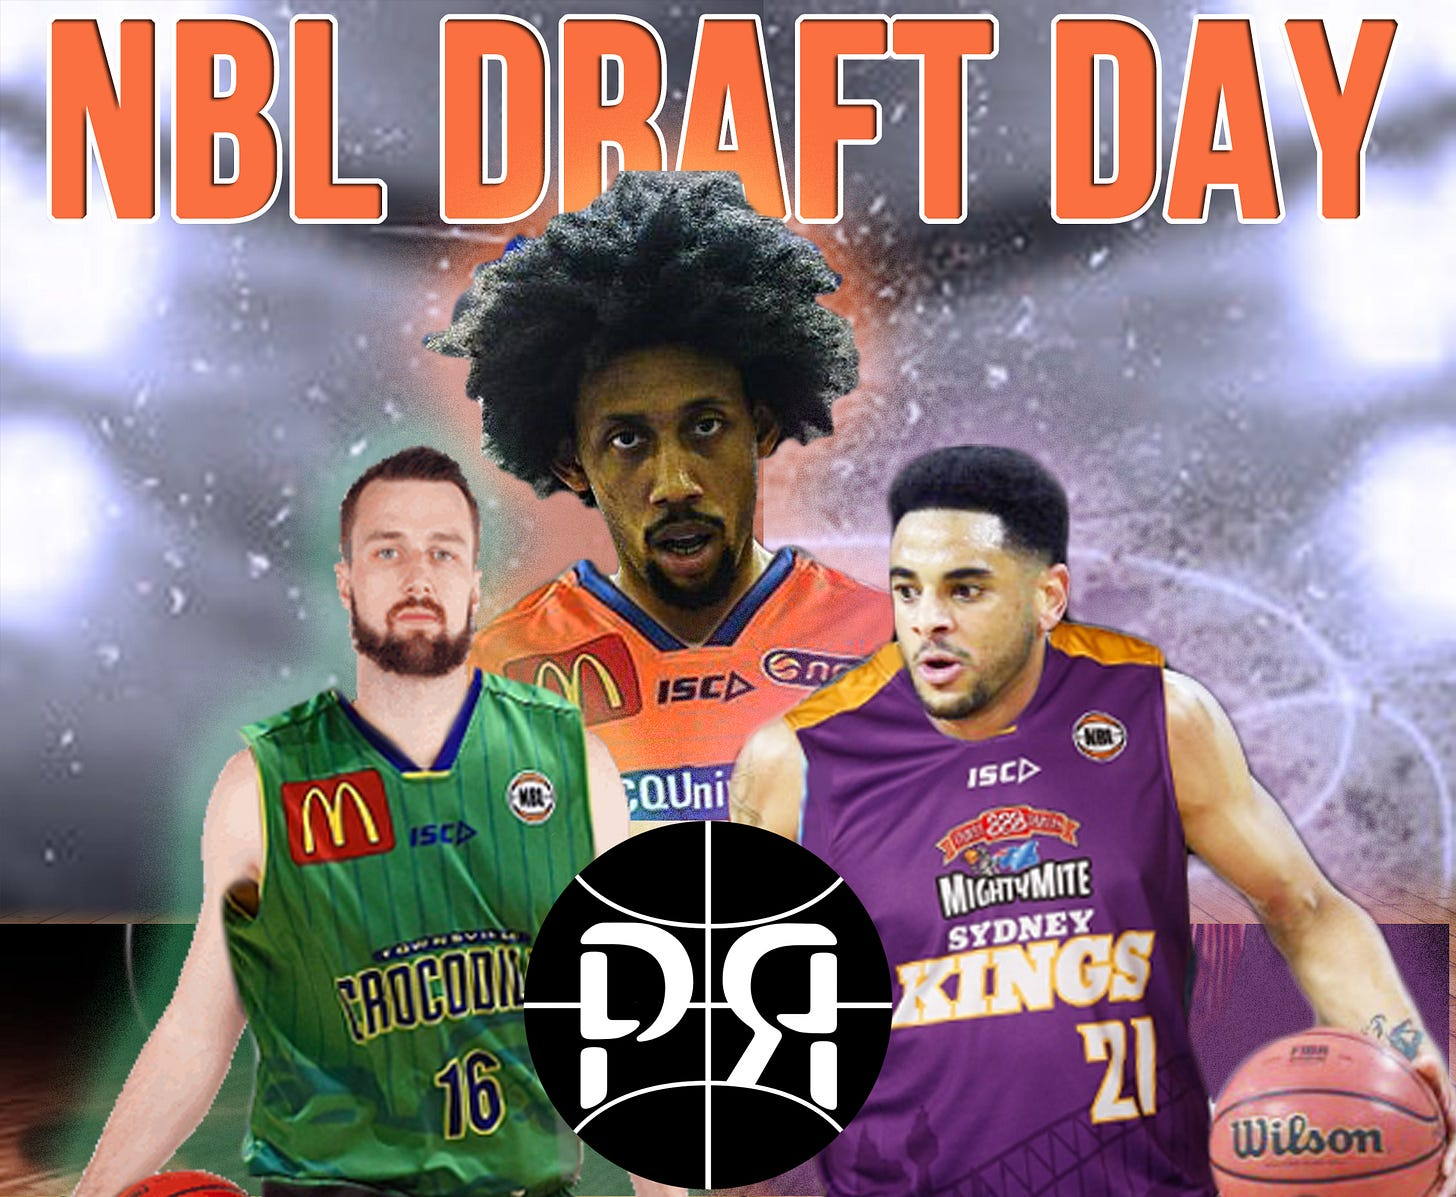 NB_Draft_Day